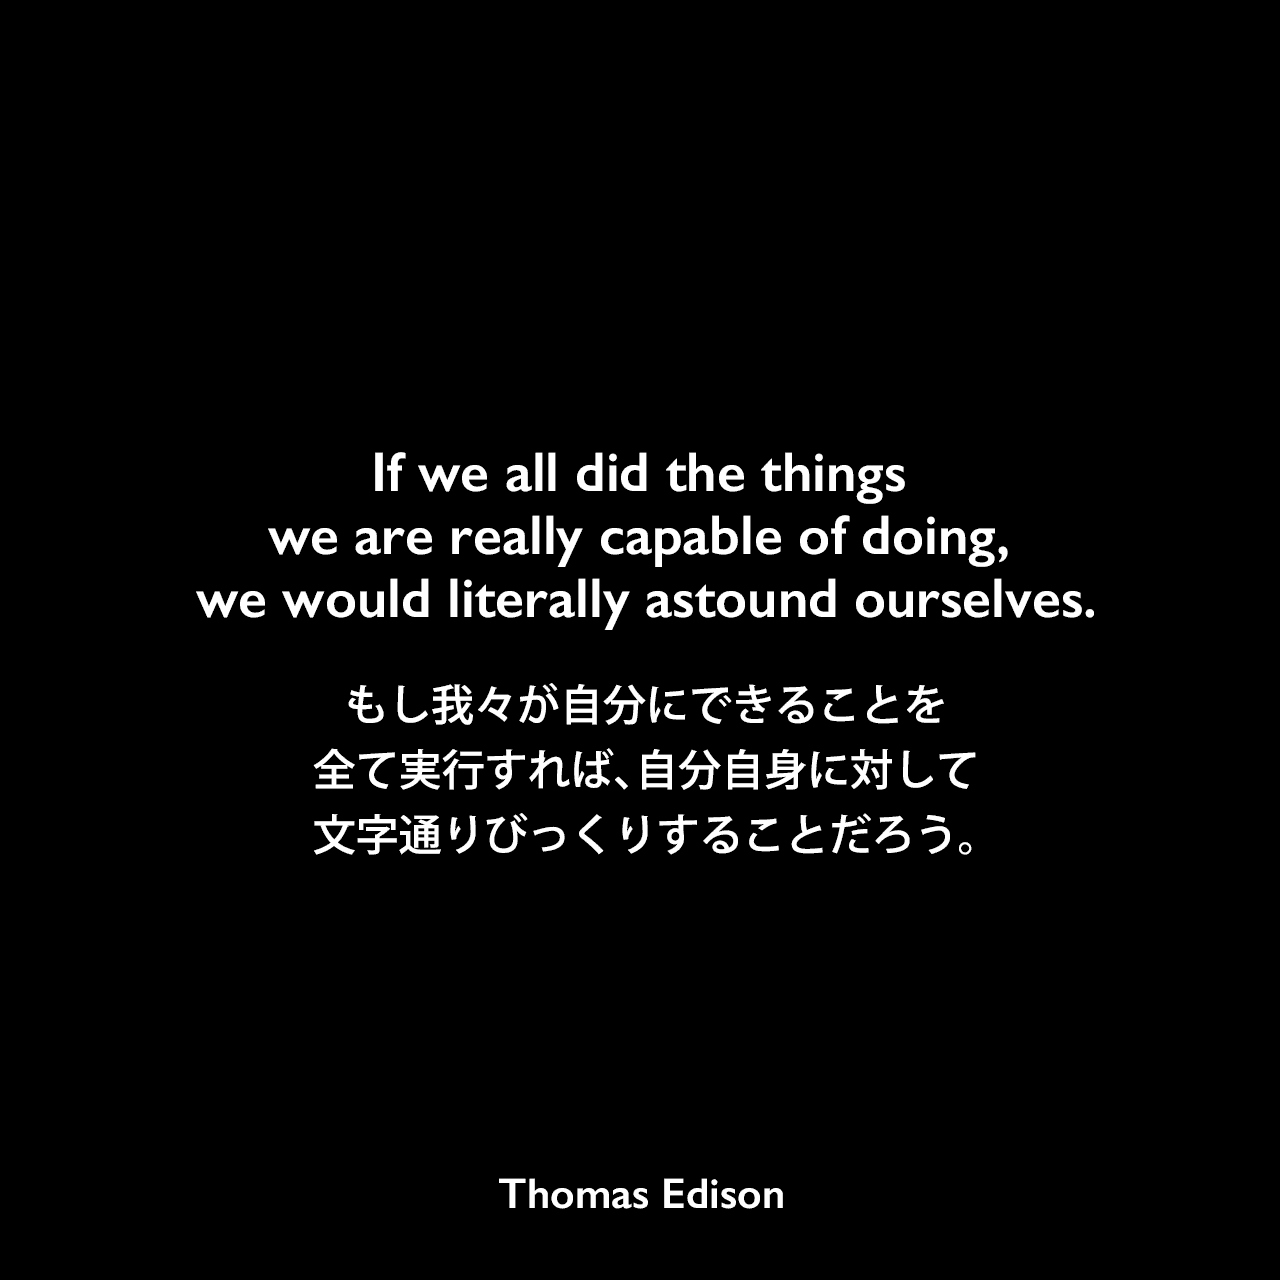 If we all did the things we are really capable of doing, we would literally astound ourselves.もし我々が自分にできることを全て実行すれば、自分自身に対して文字通りびっくりすることだろう。- Edison Innovation Foundationよりエジソンの言葉として引用Thomas Edison